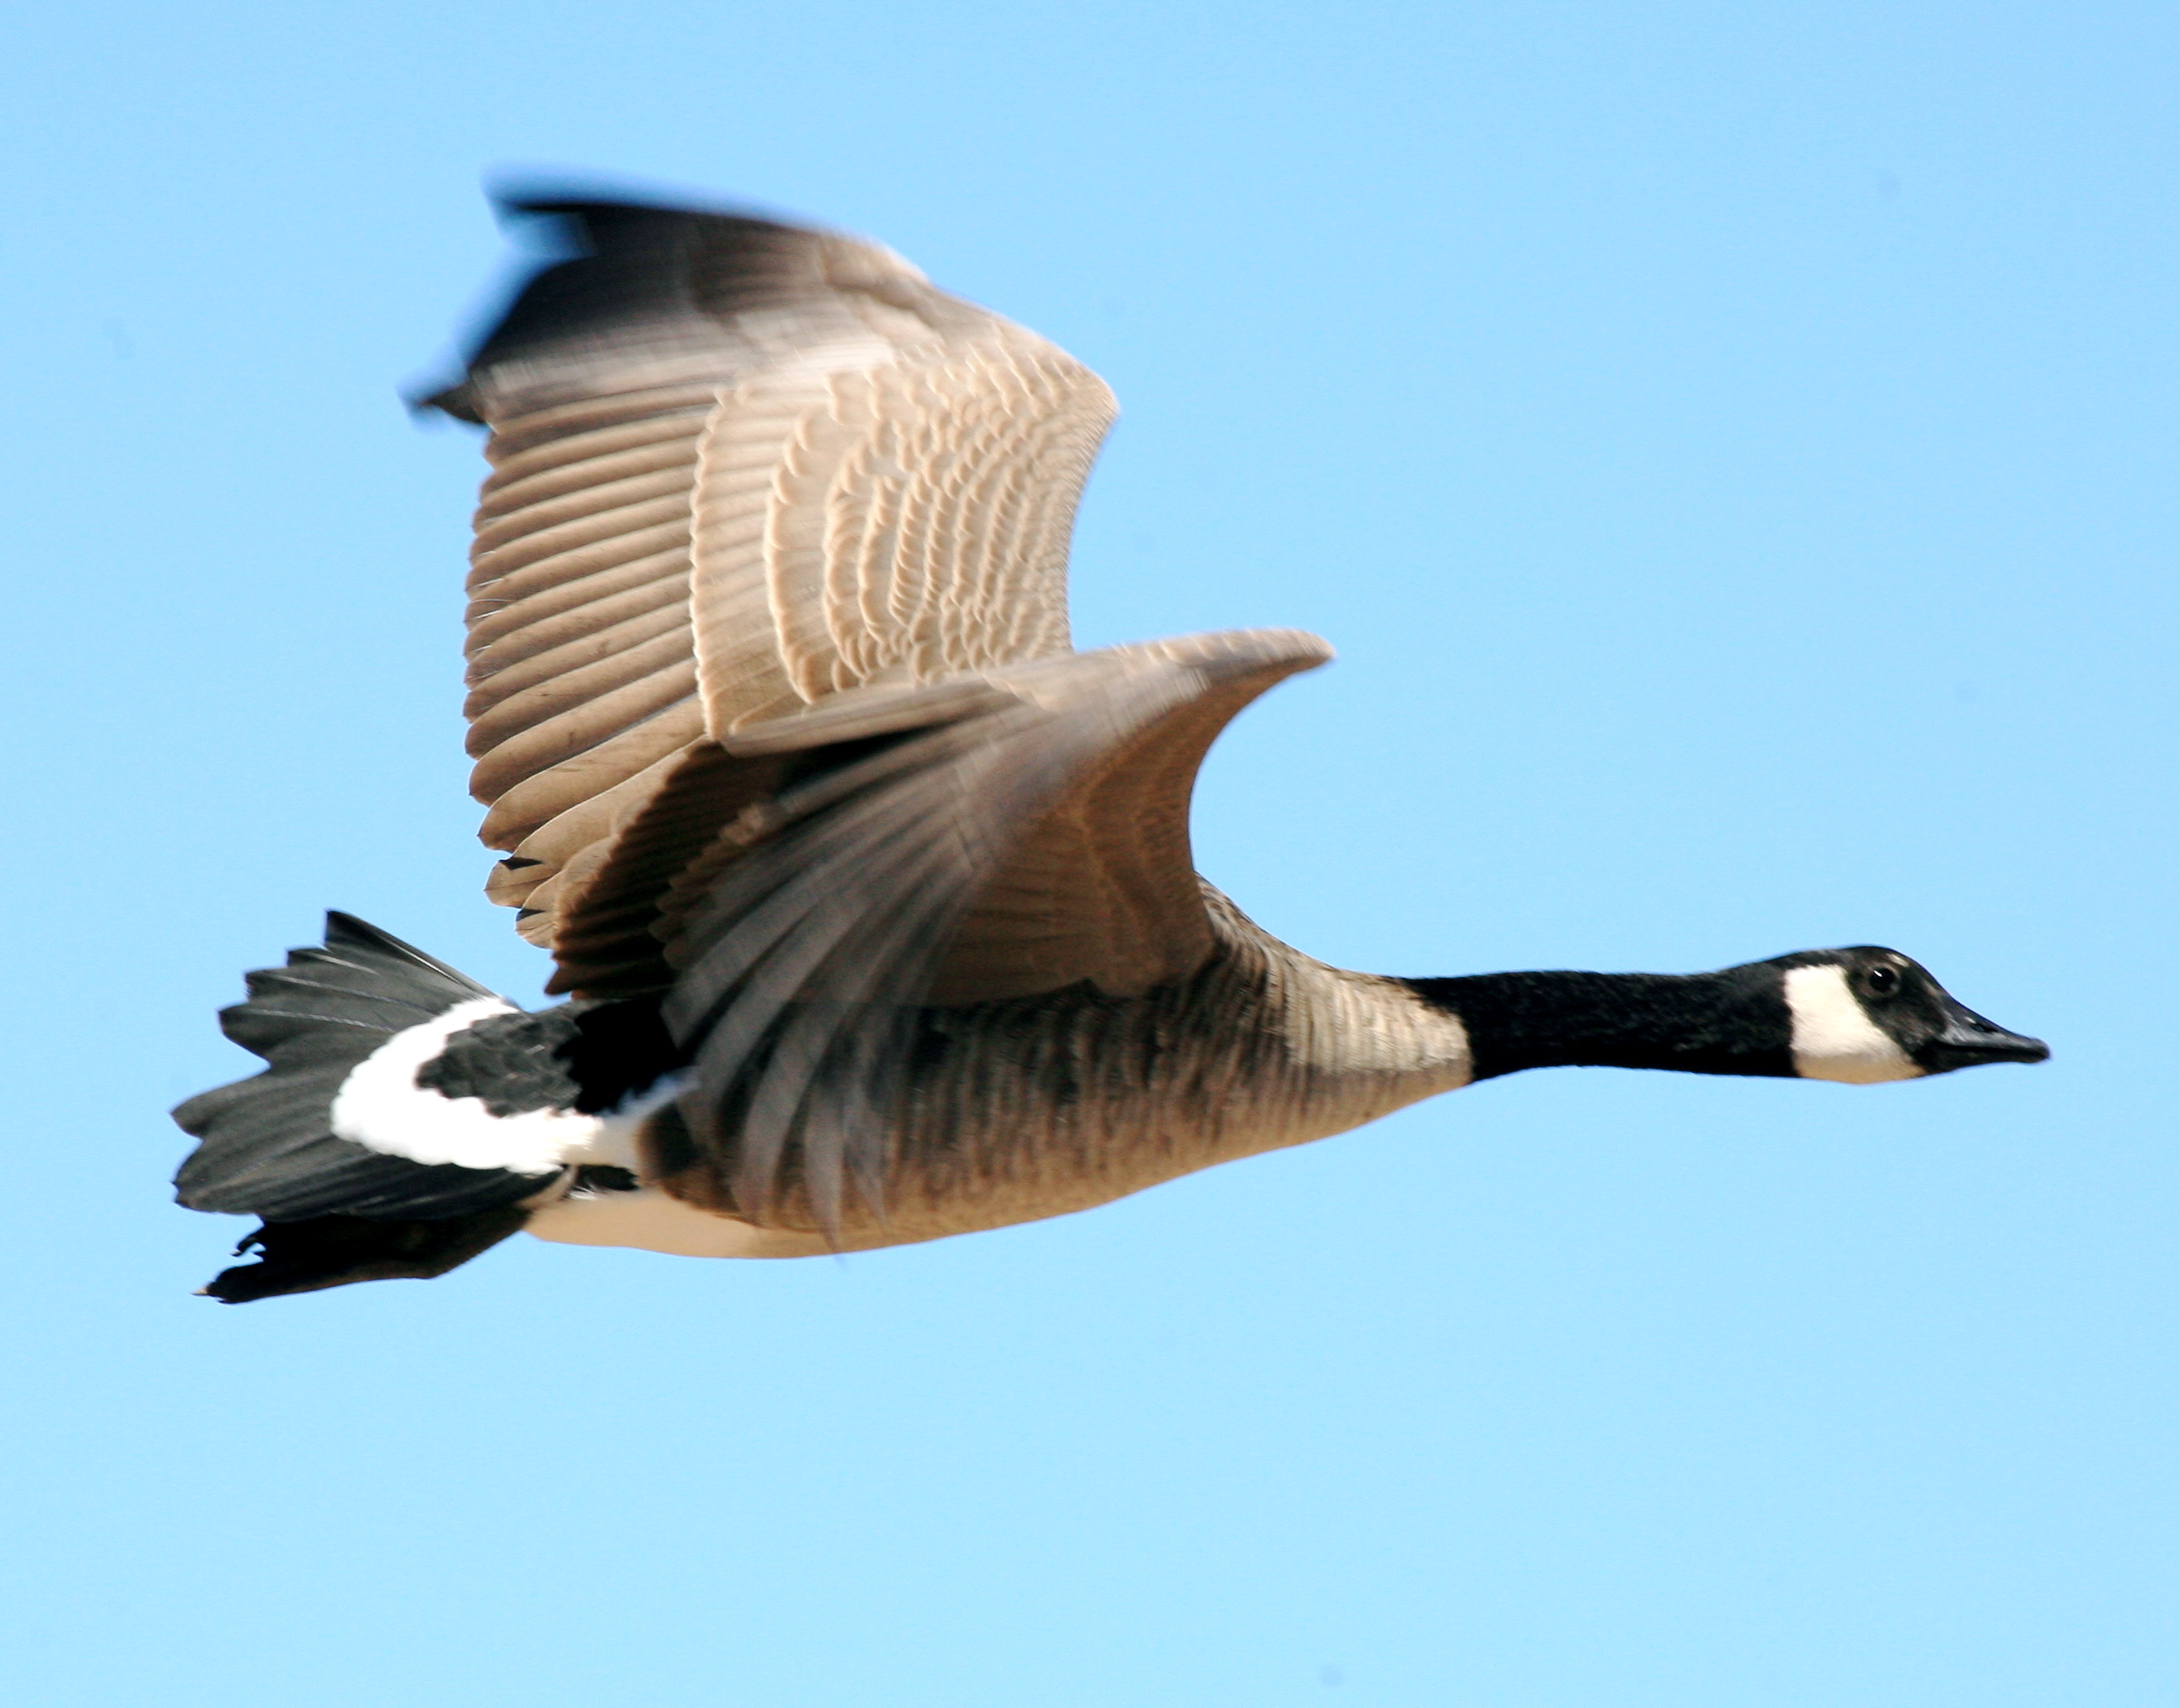 Canada Goose mens outlet price - File:O Canada goose.jpg - Wikimedia Commons